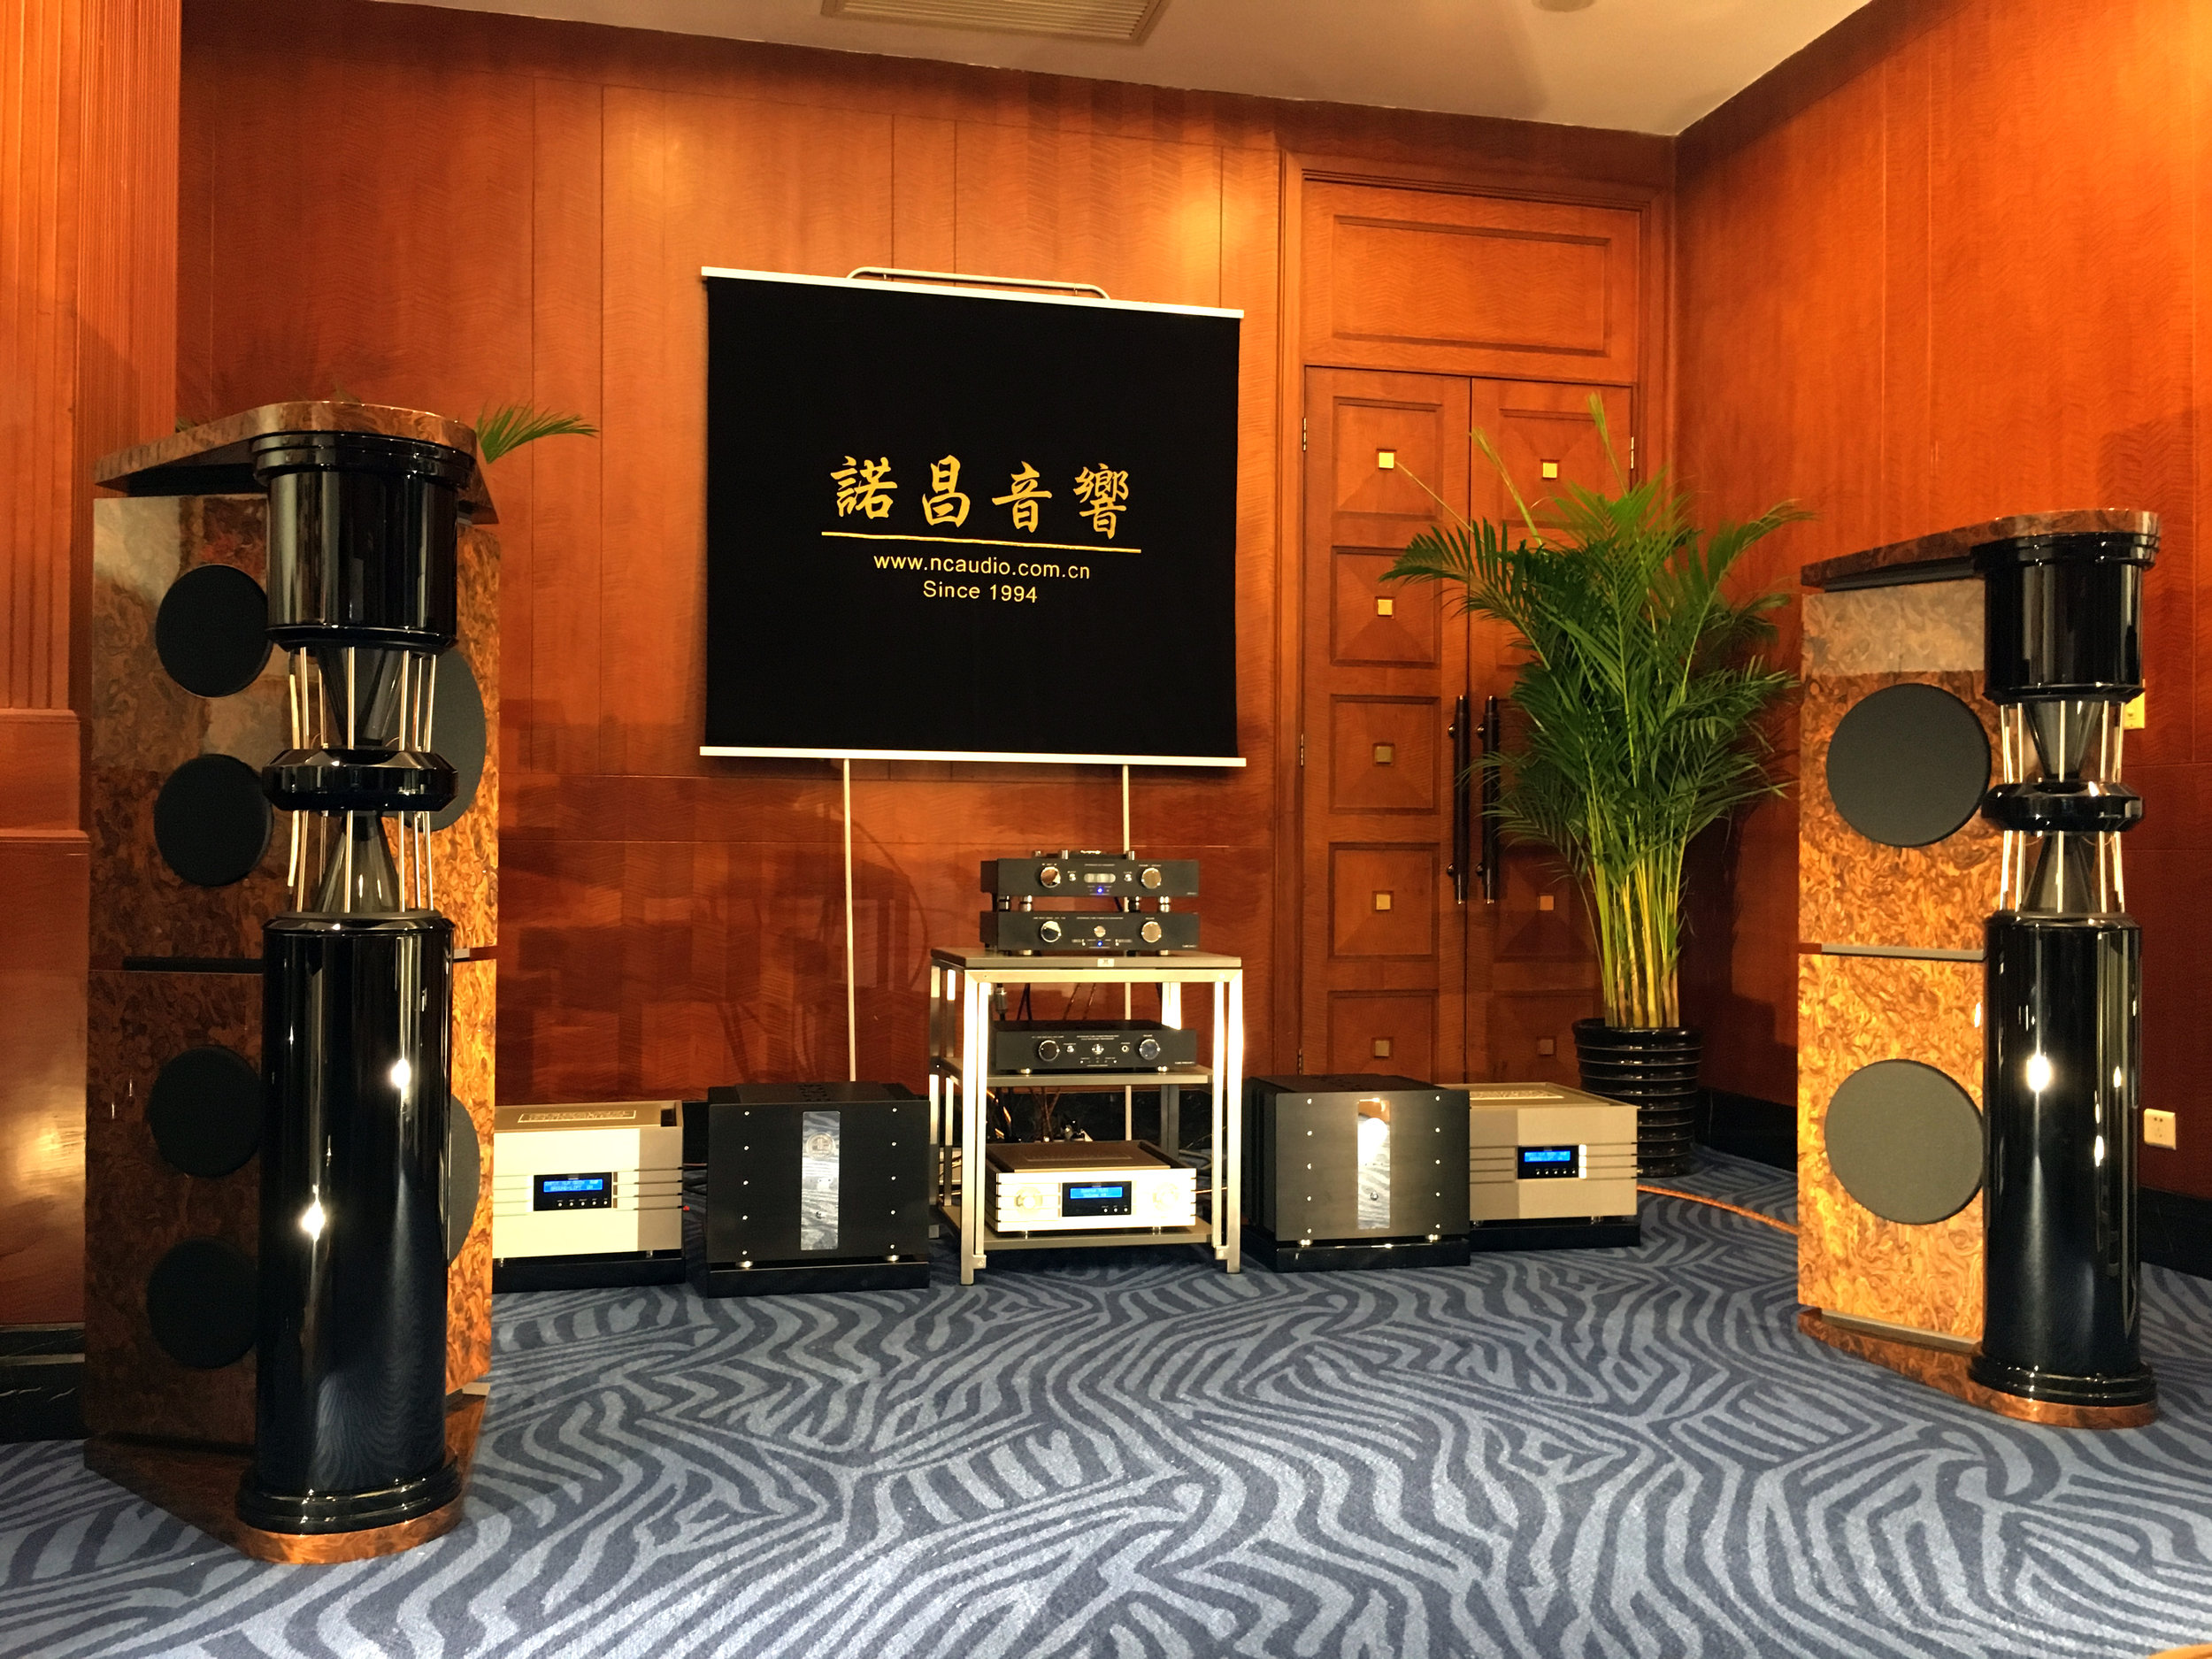 PQS-402 loudspeakers in French walnut cluster | Shanghai Show 2018, China